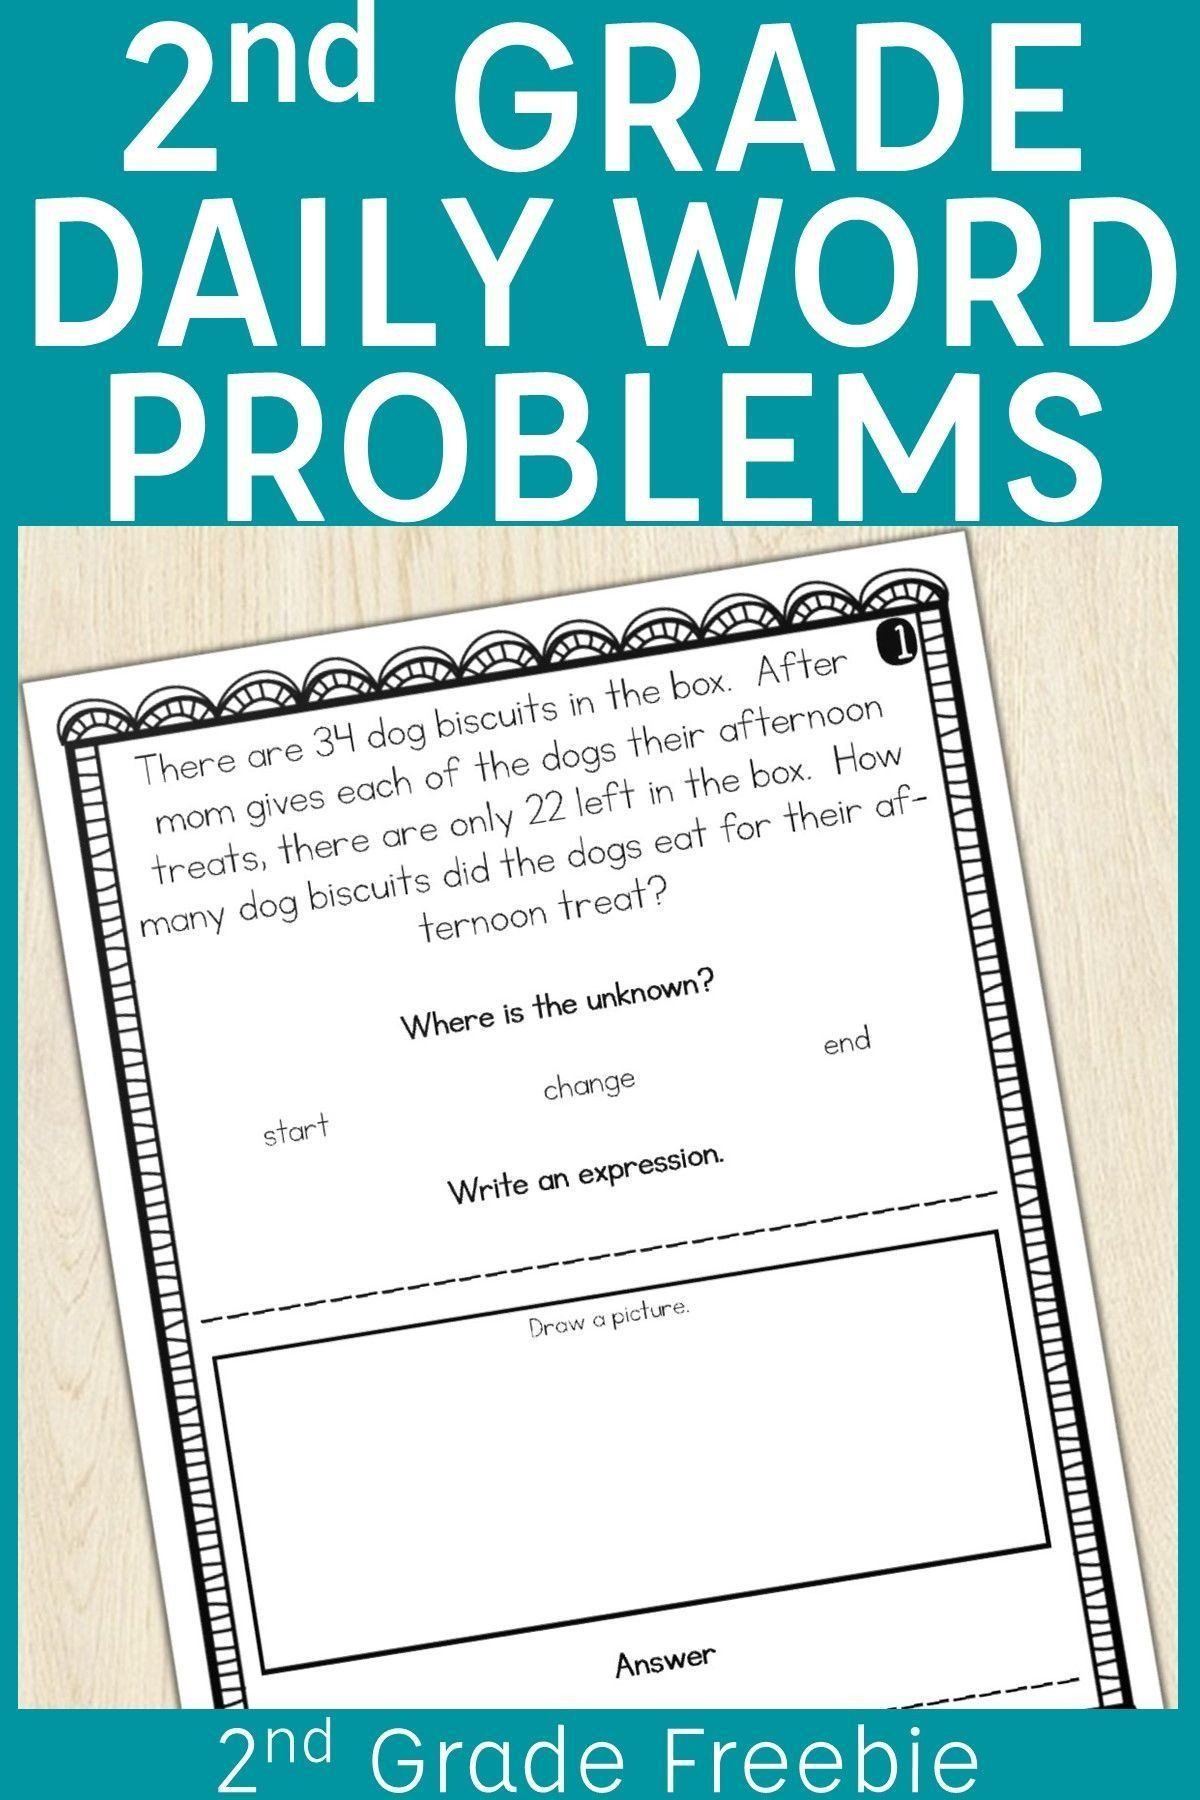 medium resolution of Story Retell Worksheet 2nd Grade   Printable Worksheets and Activities for  Teachers